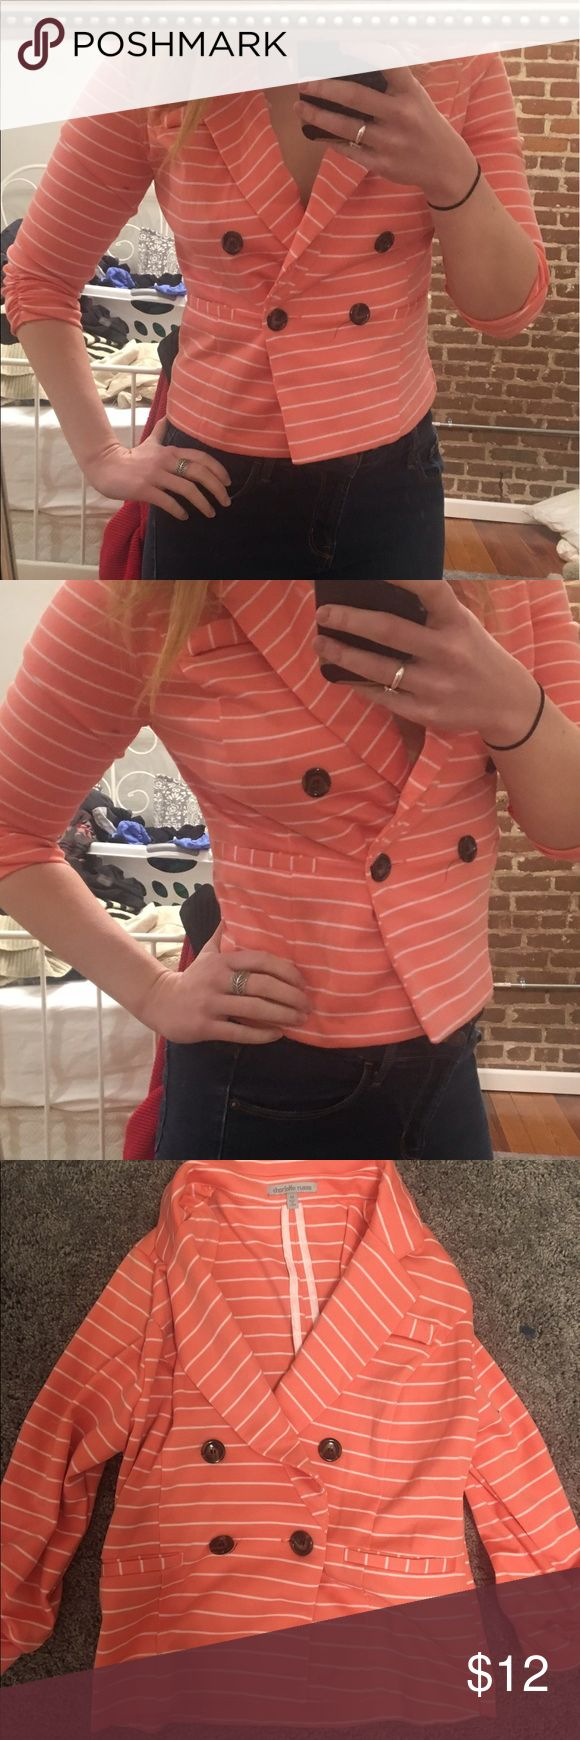 Peach Blazer Short peach blazer with white stripes! Can be casual or dressy Jackets & Coats Blazers